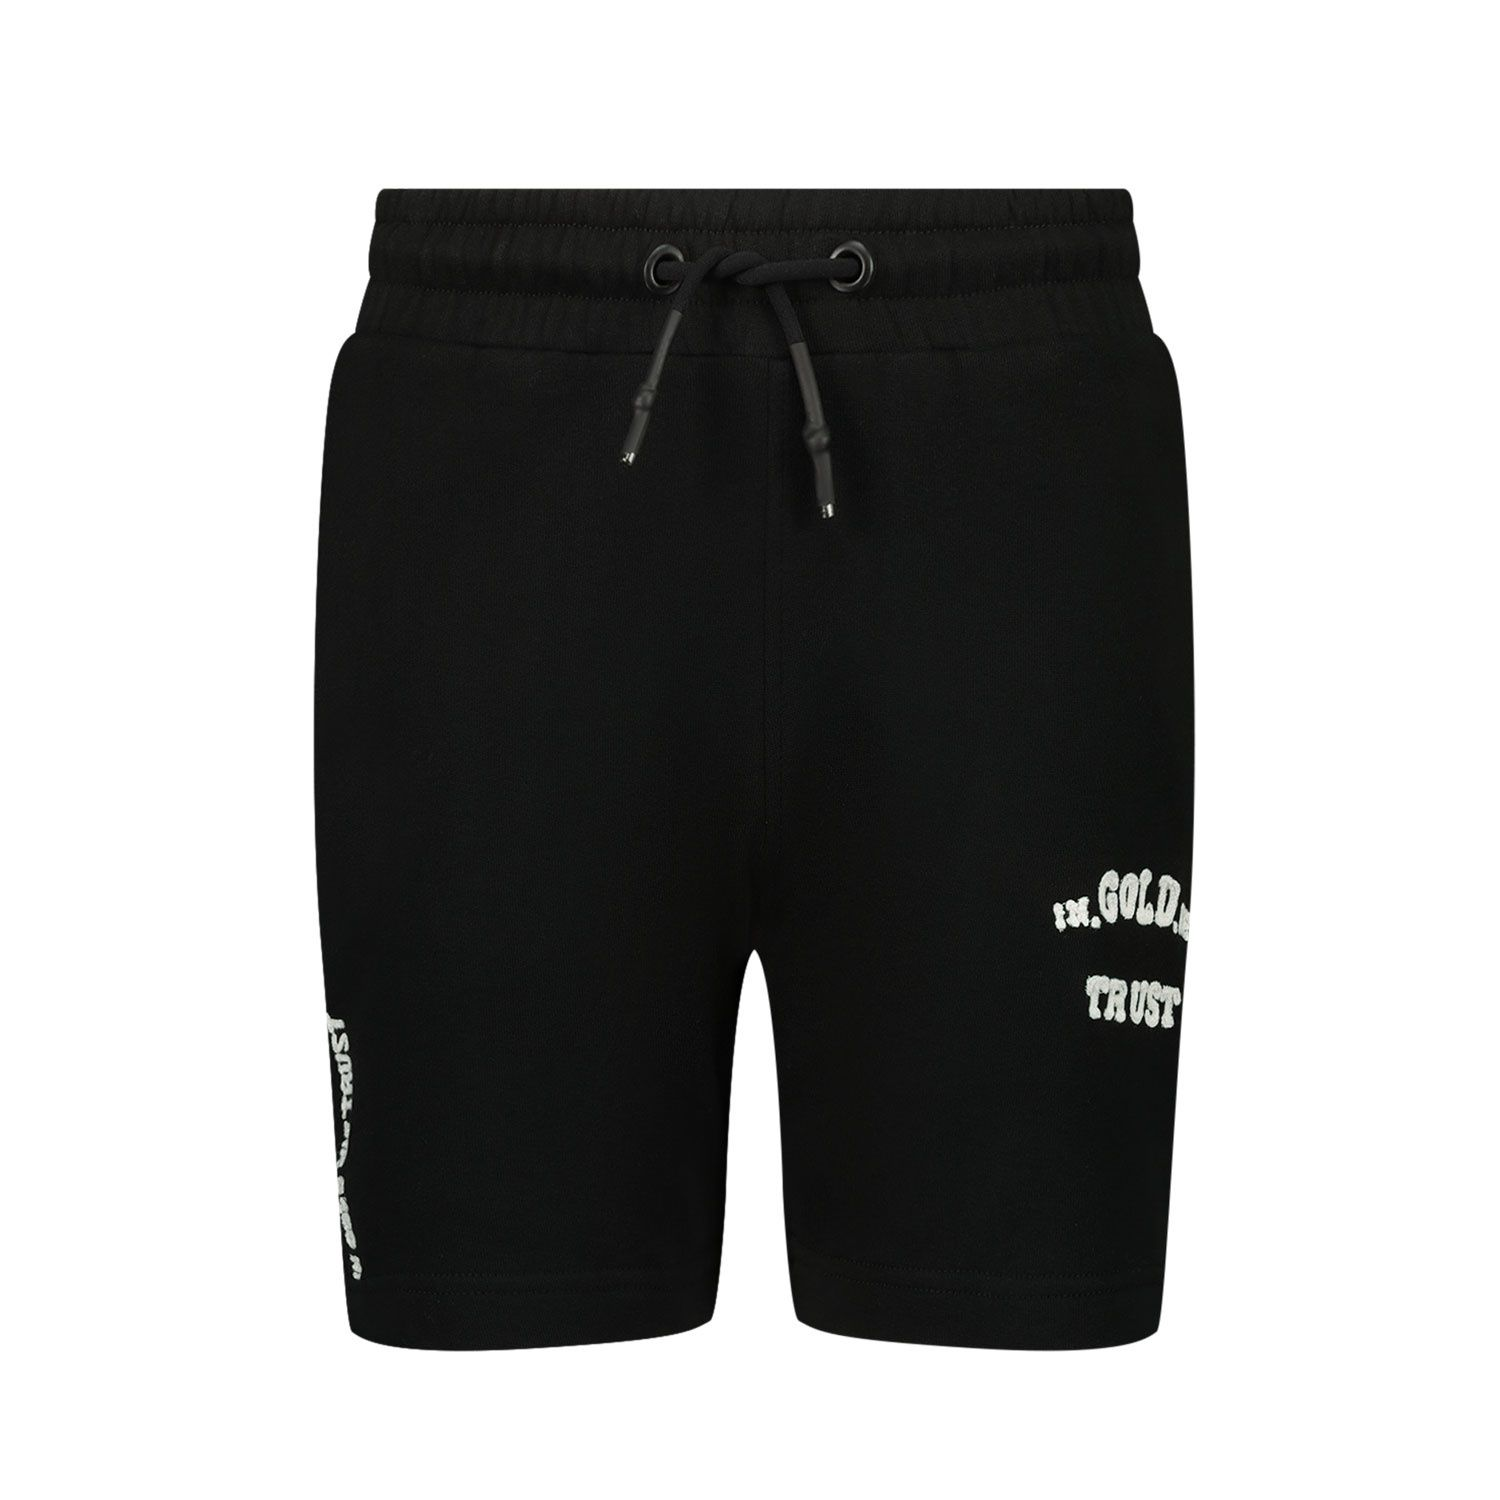 Picture of in Gold We Trust CHAIN EMBROIDERY SHORT kids shorts black